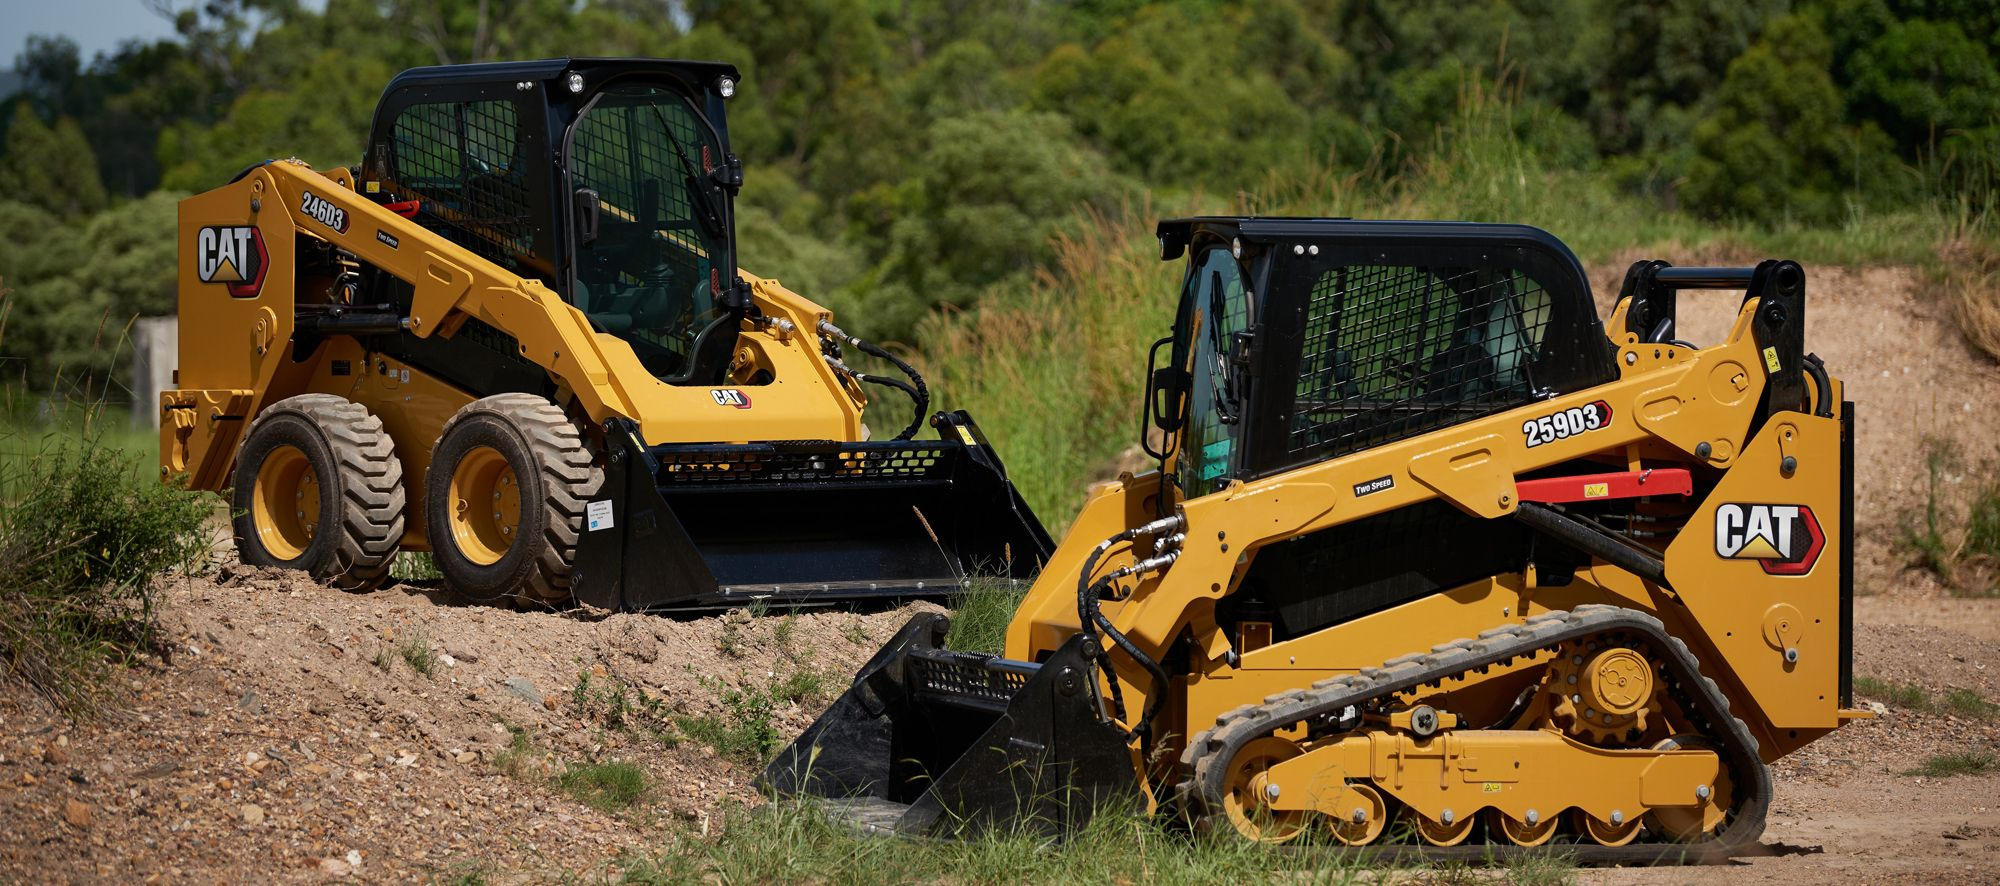 Should I Buy a Skid Steer or Compact Track Loader?